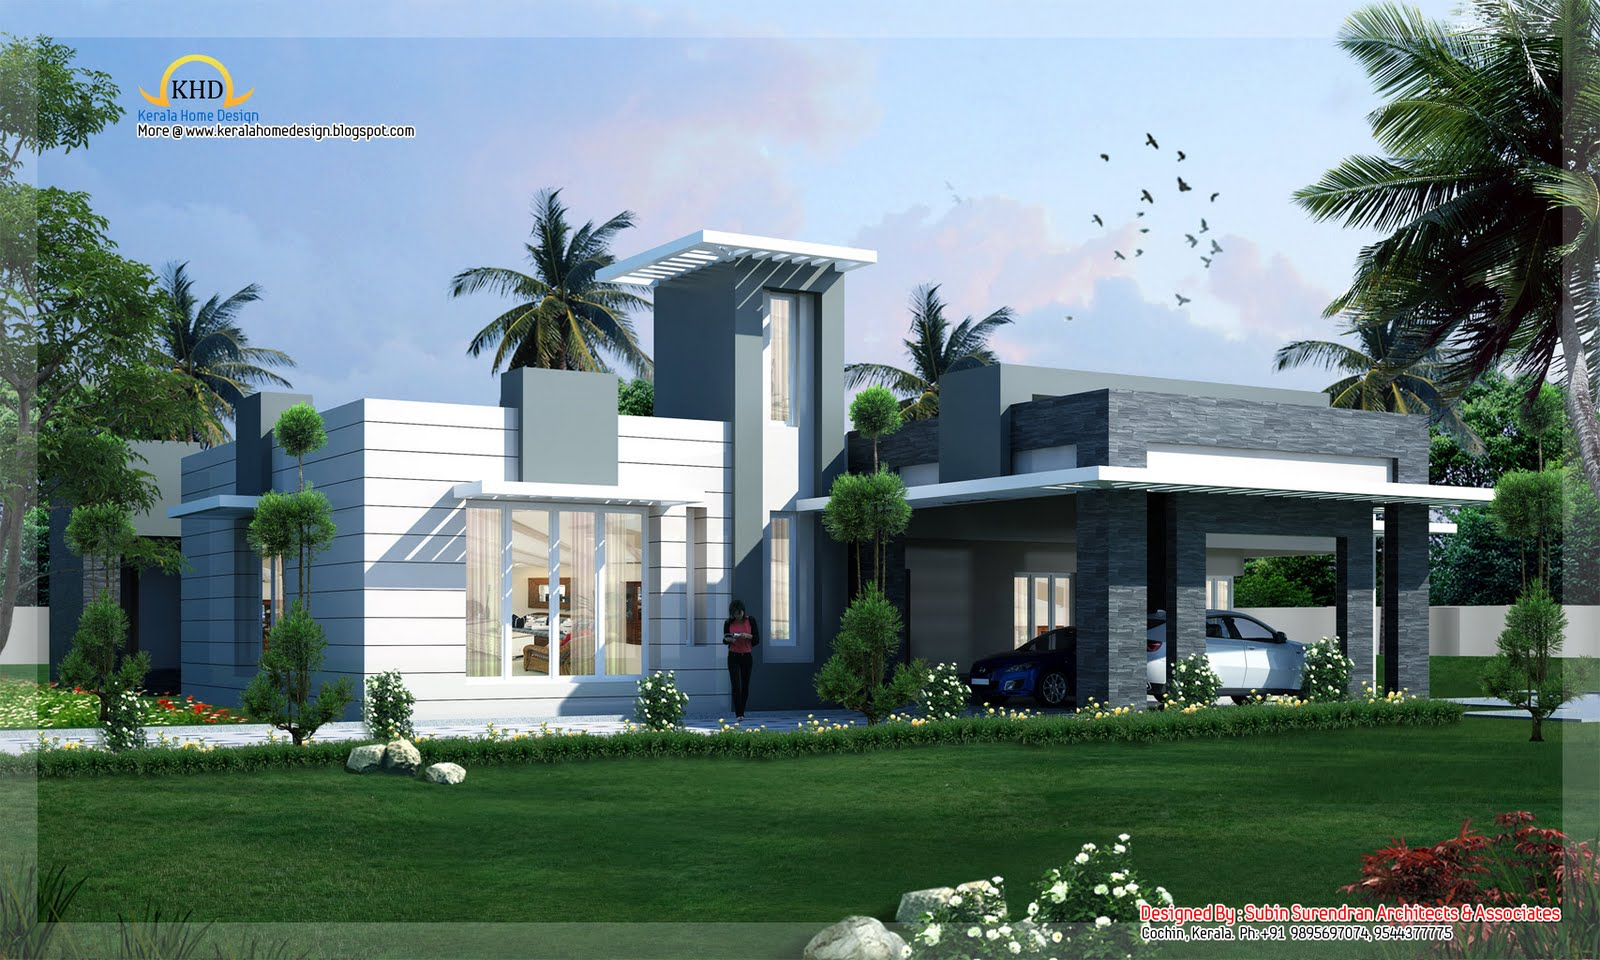 Delicieux Contemporary Home Design   418 Sq M (4500 Sq. Ft)   January 2012